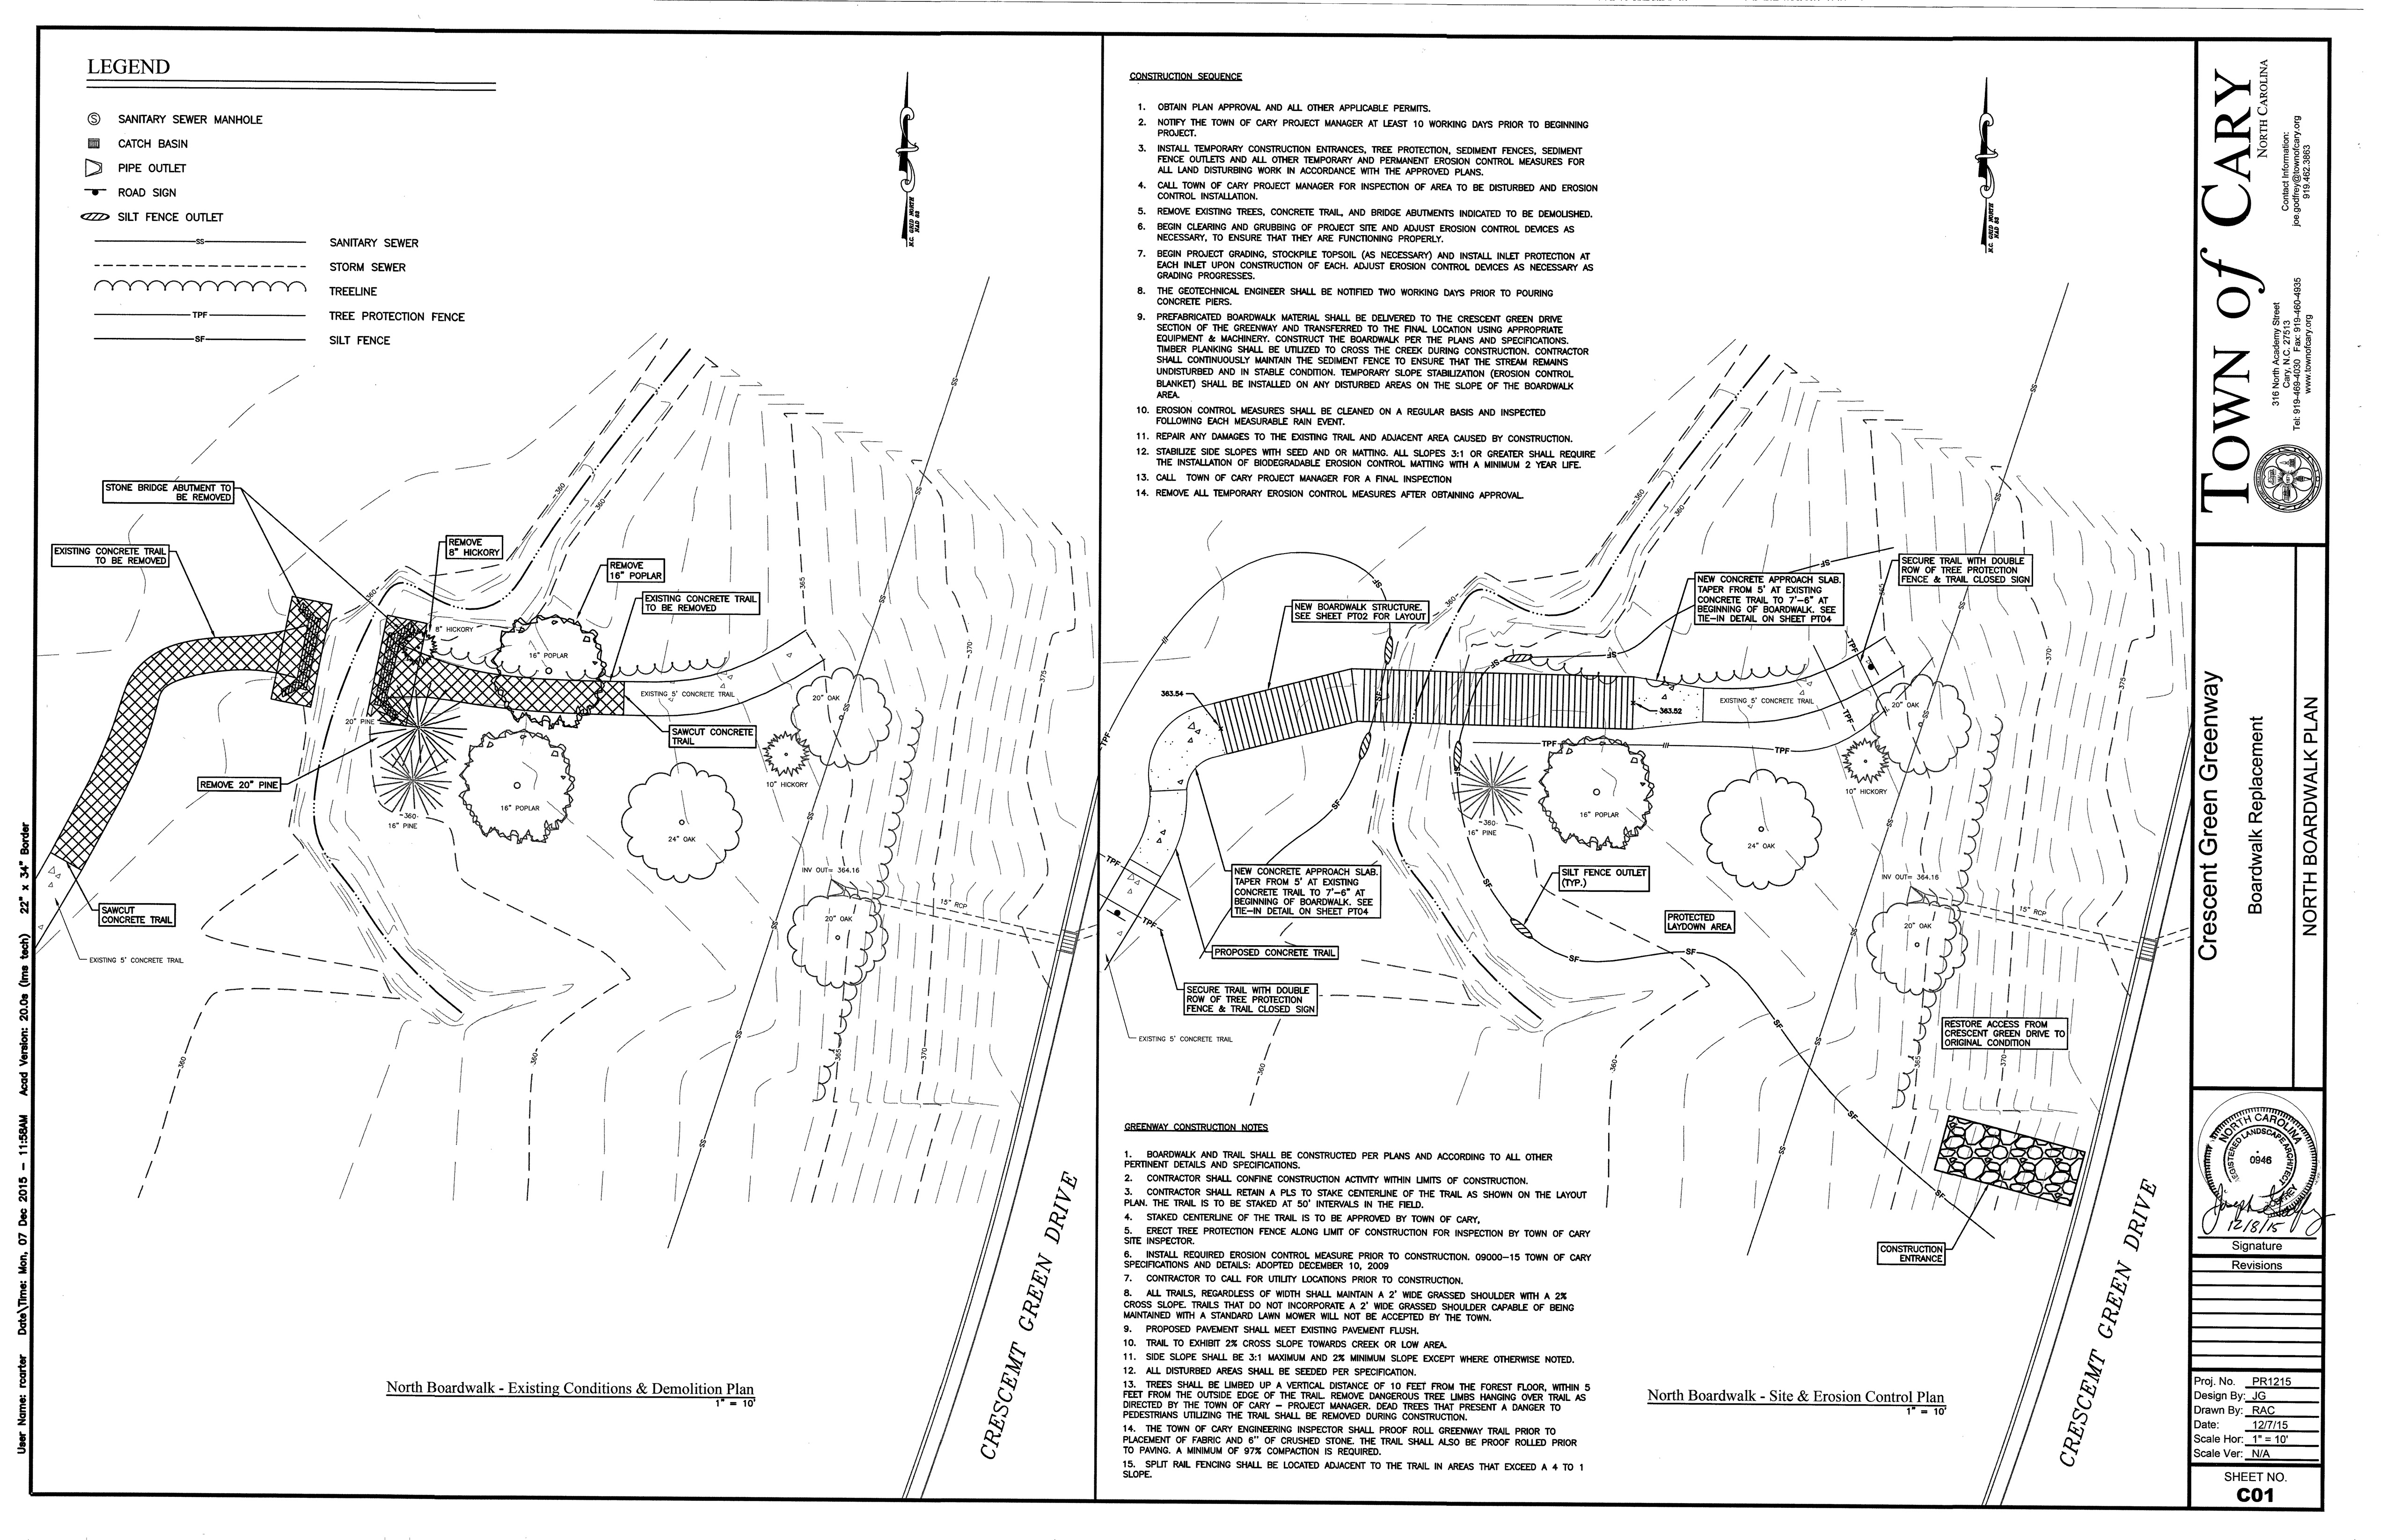 Crescent_Green_Greenway_Construction_Drawings_Cary_NC_pg2.jpg